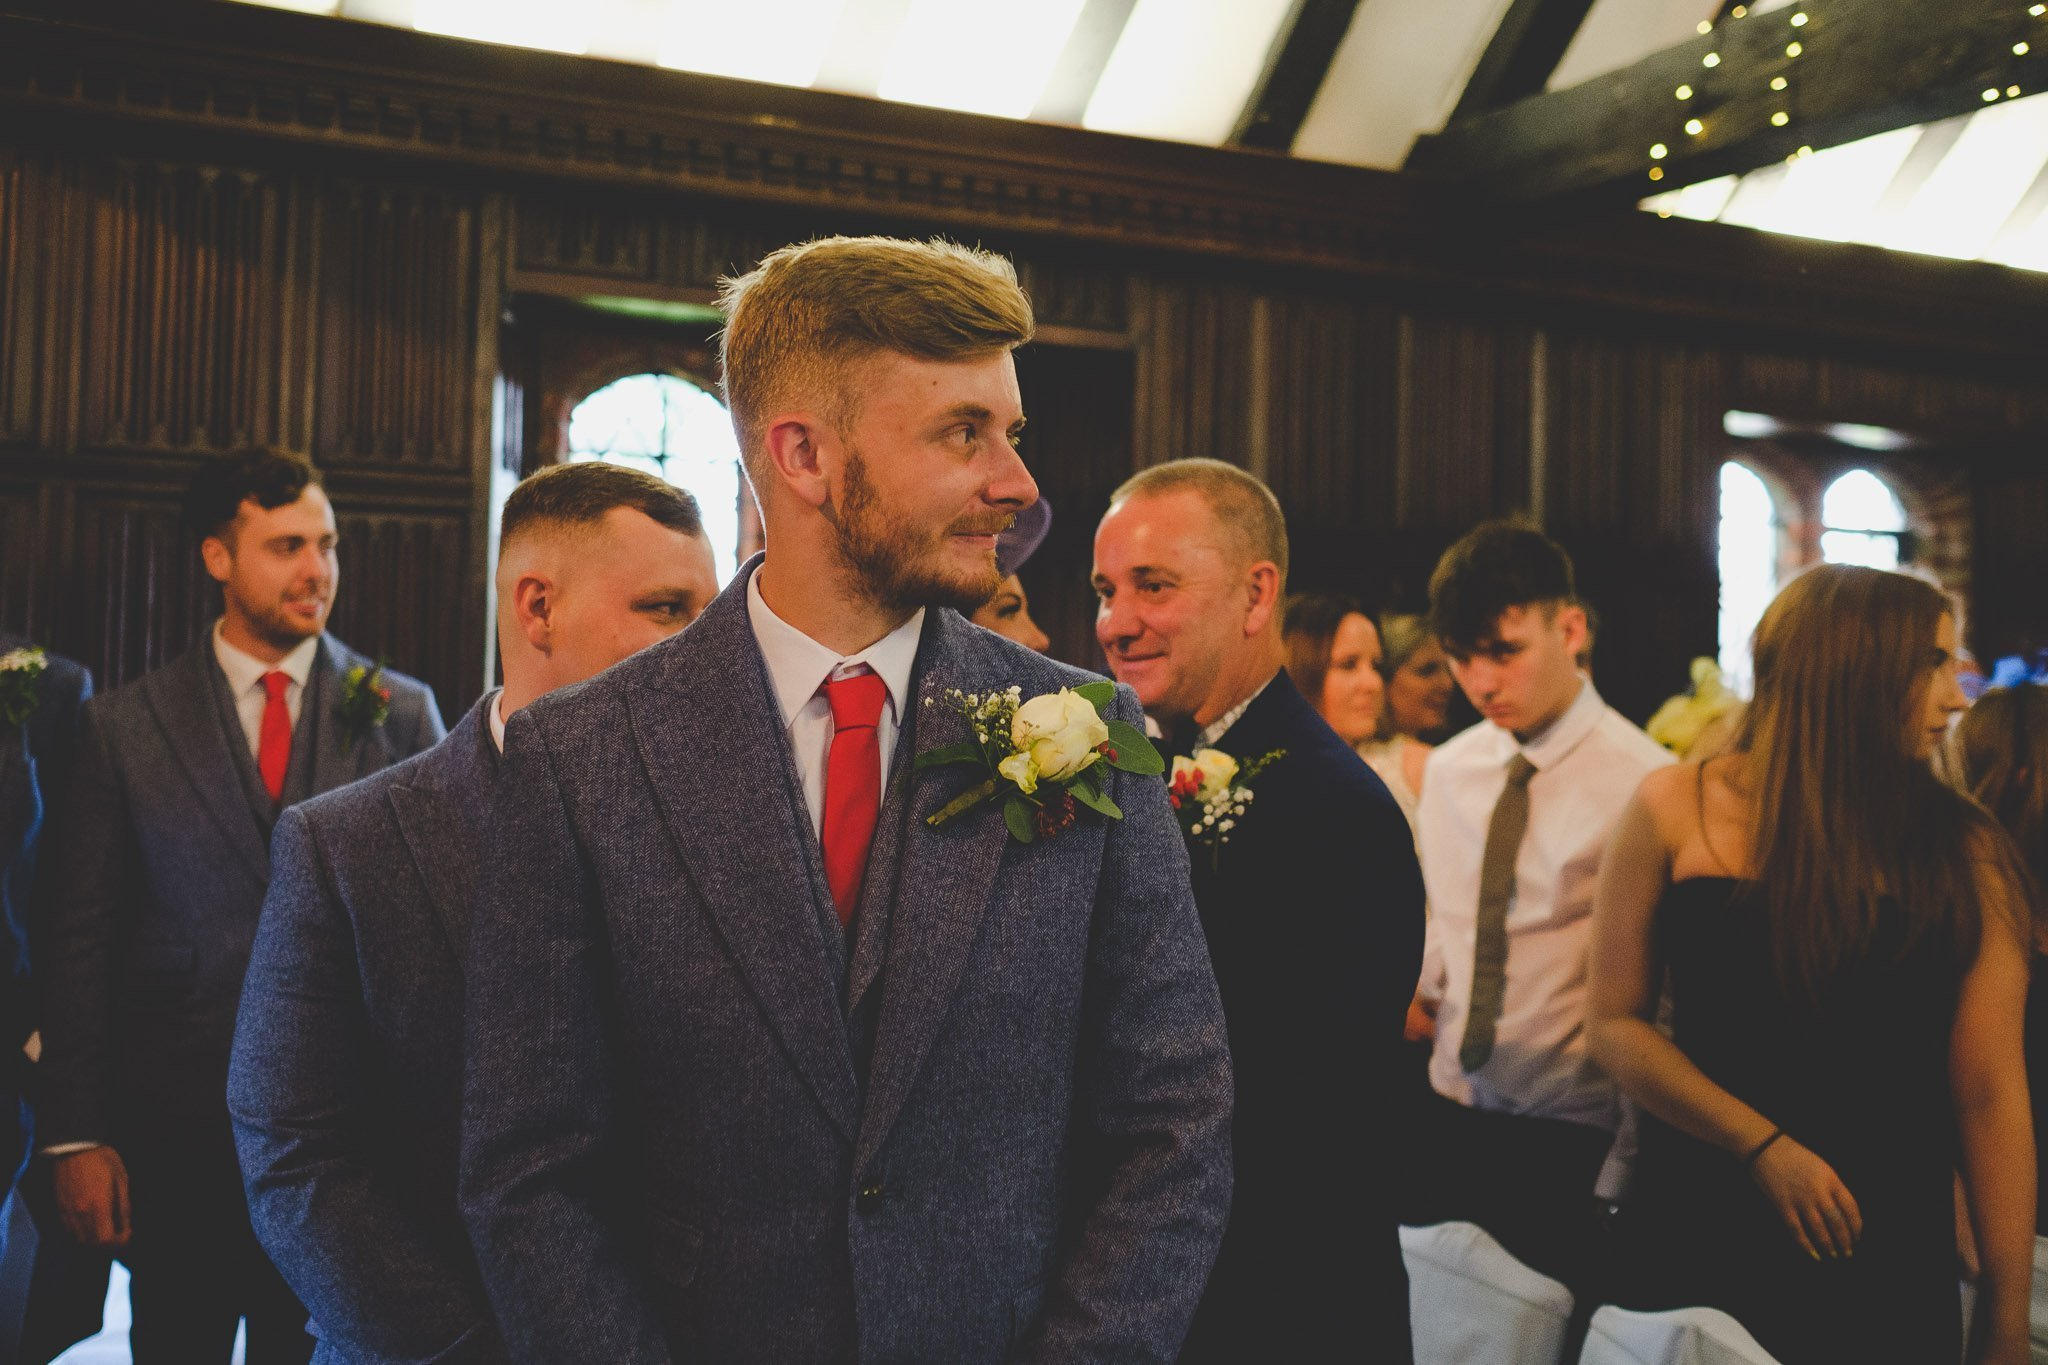 Groom excitedly waits for bride to arrive for ceremony at Leez Priory wedding